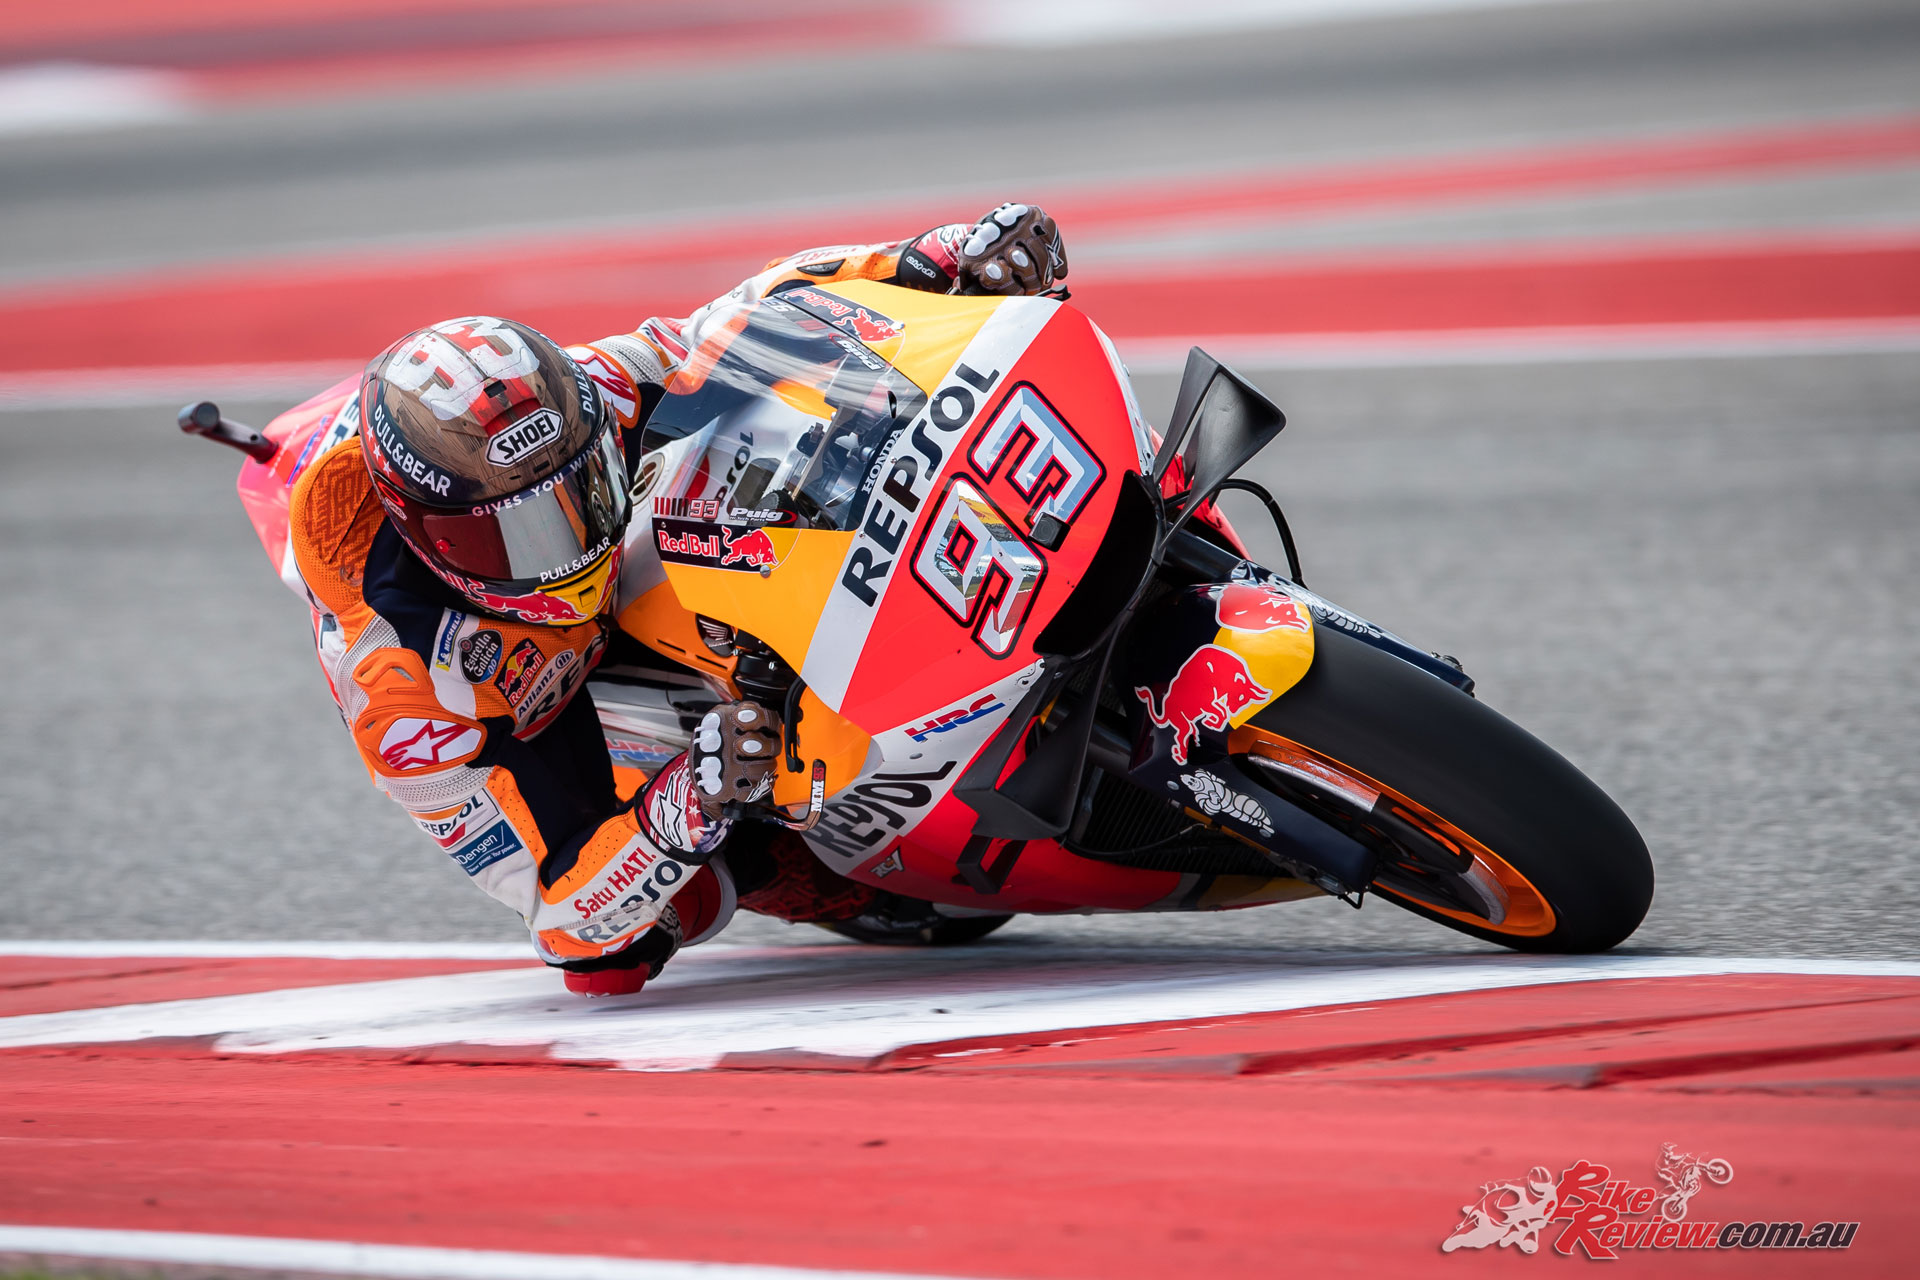 Marc Marquez - 2019 Circuit of the Americas MotoGP